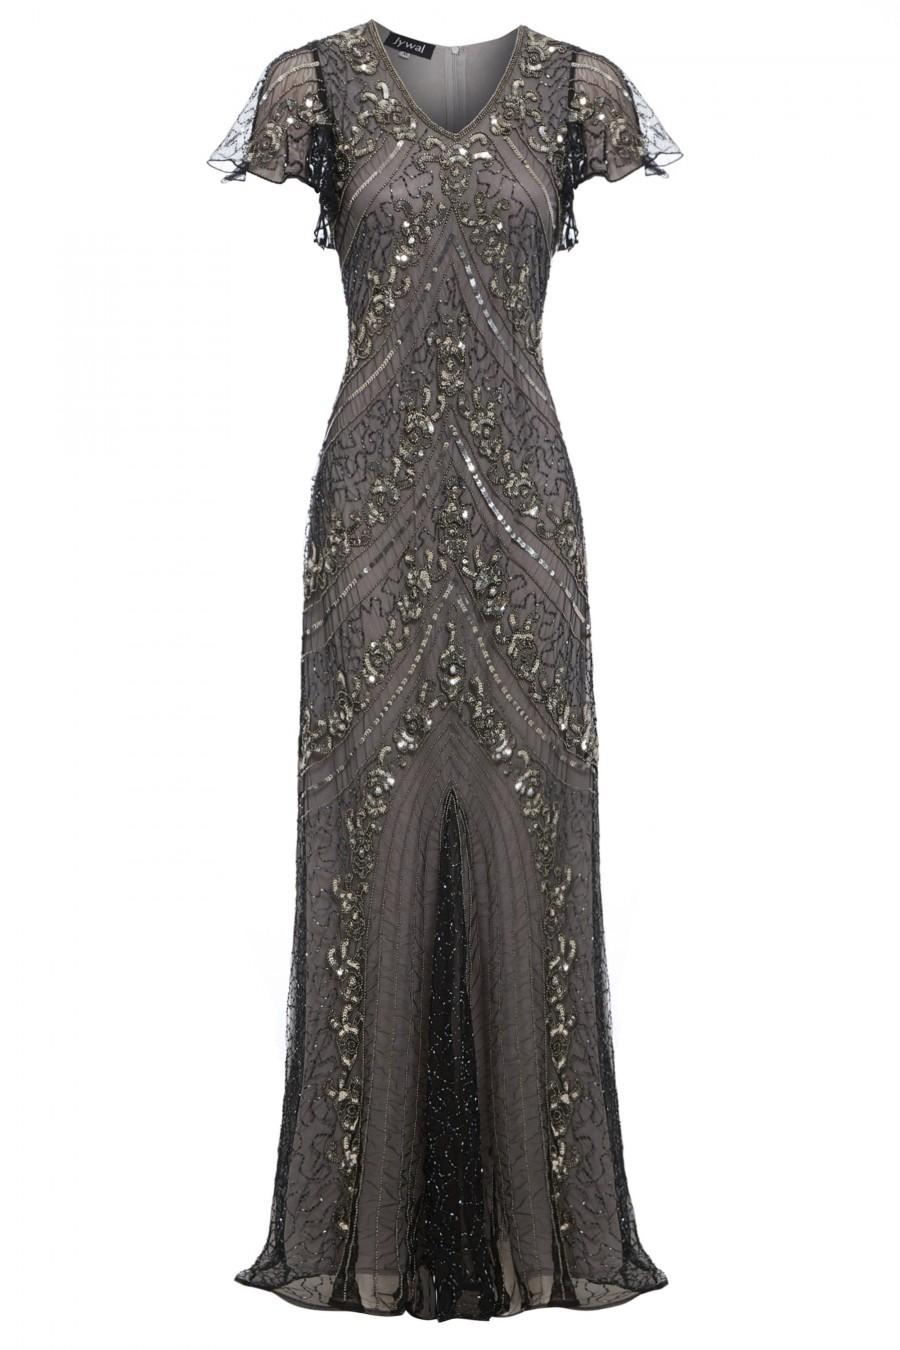 Hochzeit - Lima Embellished Flapper Dress, 1920s Great Gatsby Inspired, Downton Abbey, Wedding Ball Gown, Grey Evening Dress, Plus Size Dress, S-XXL